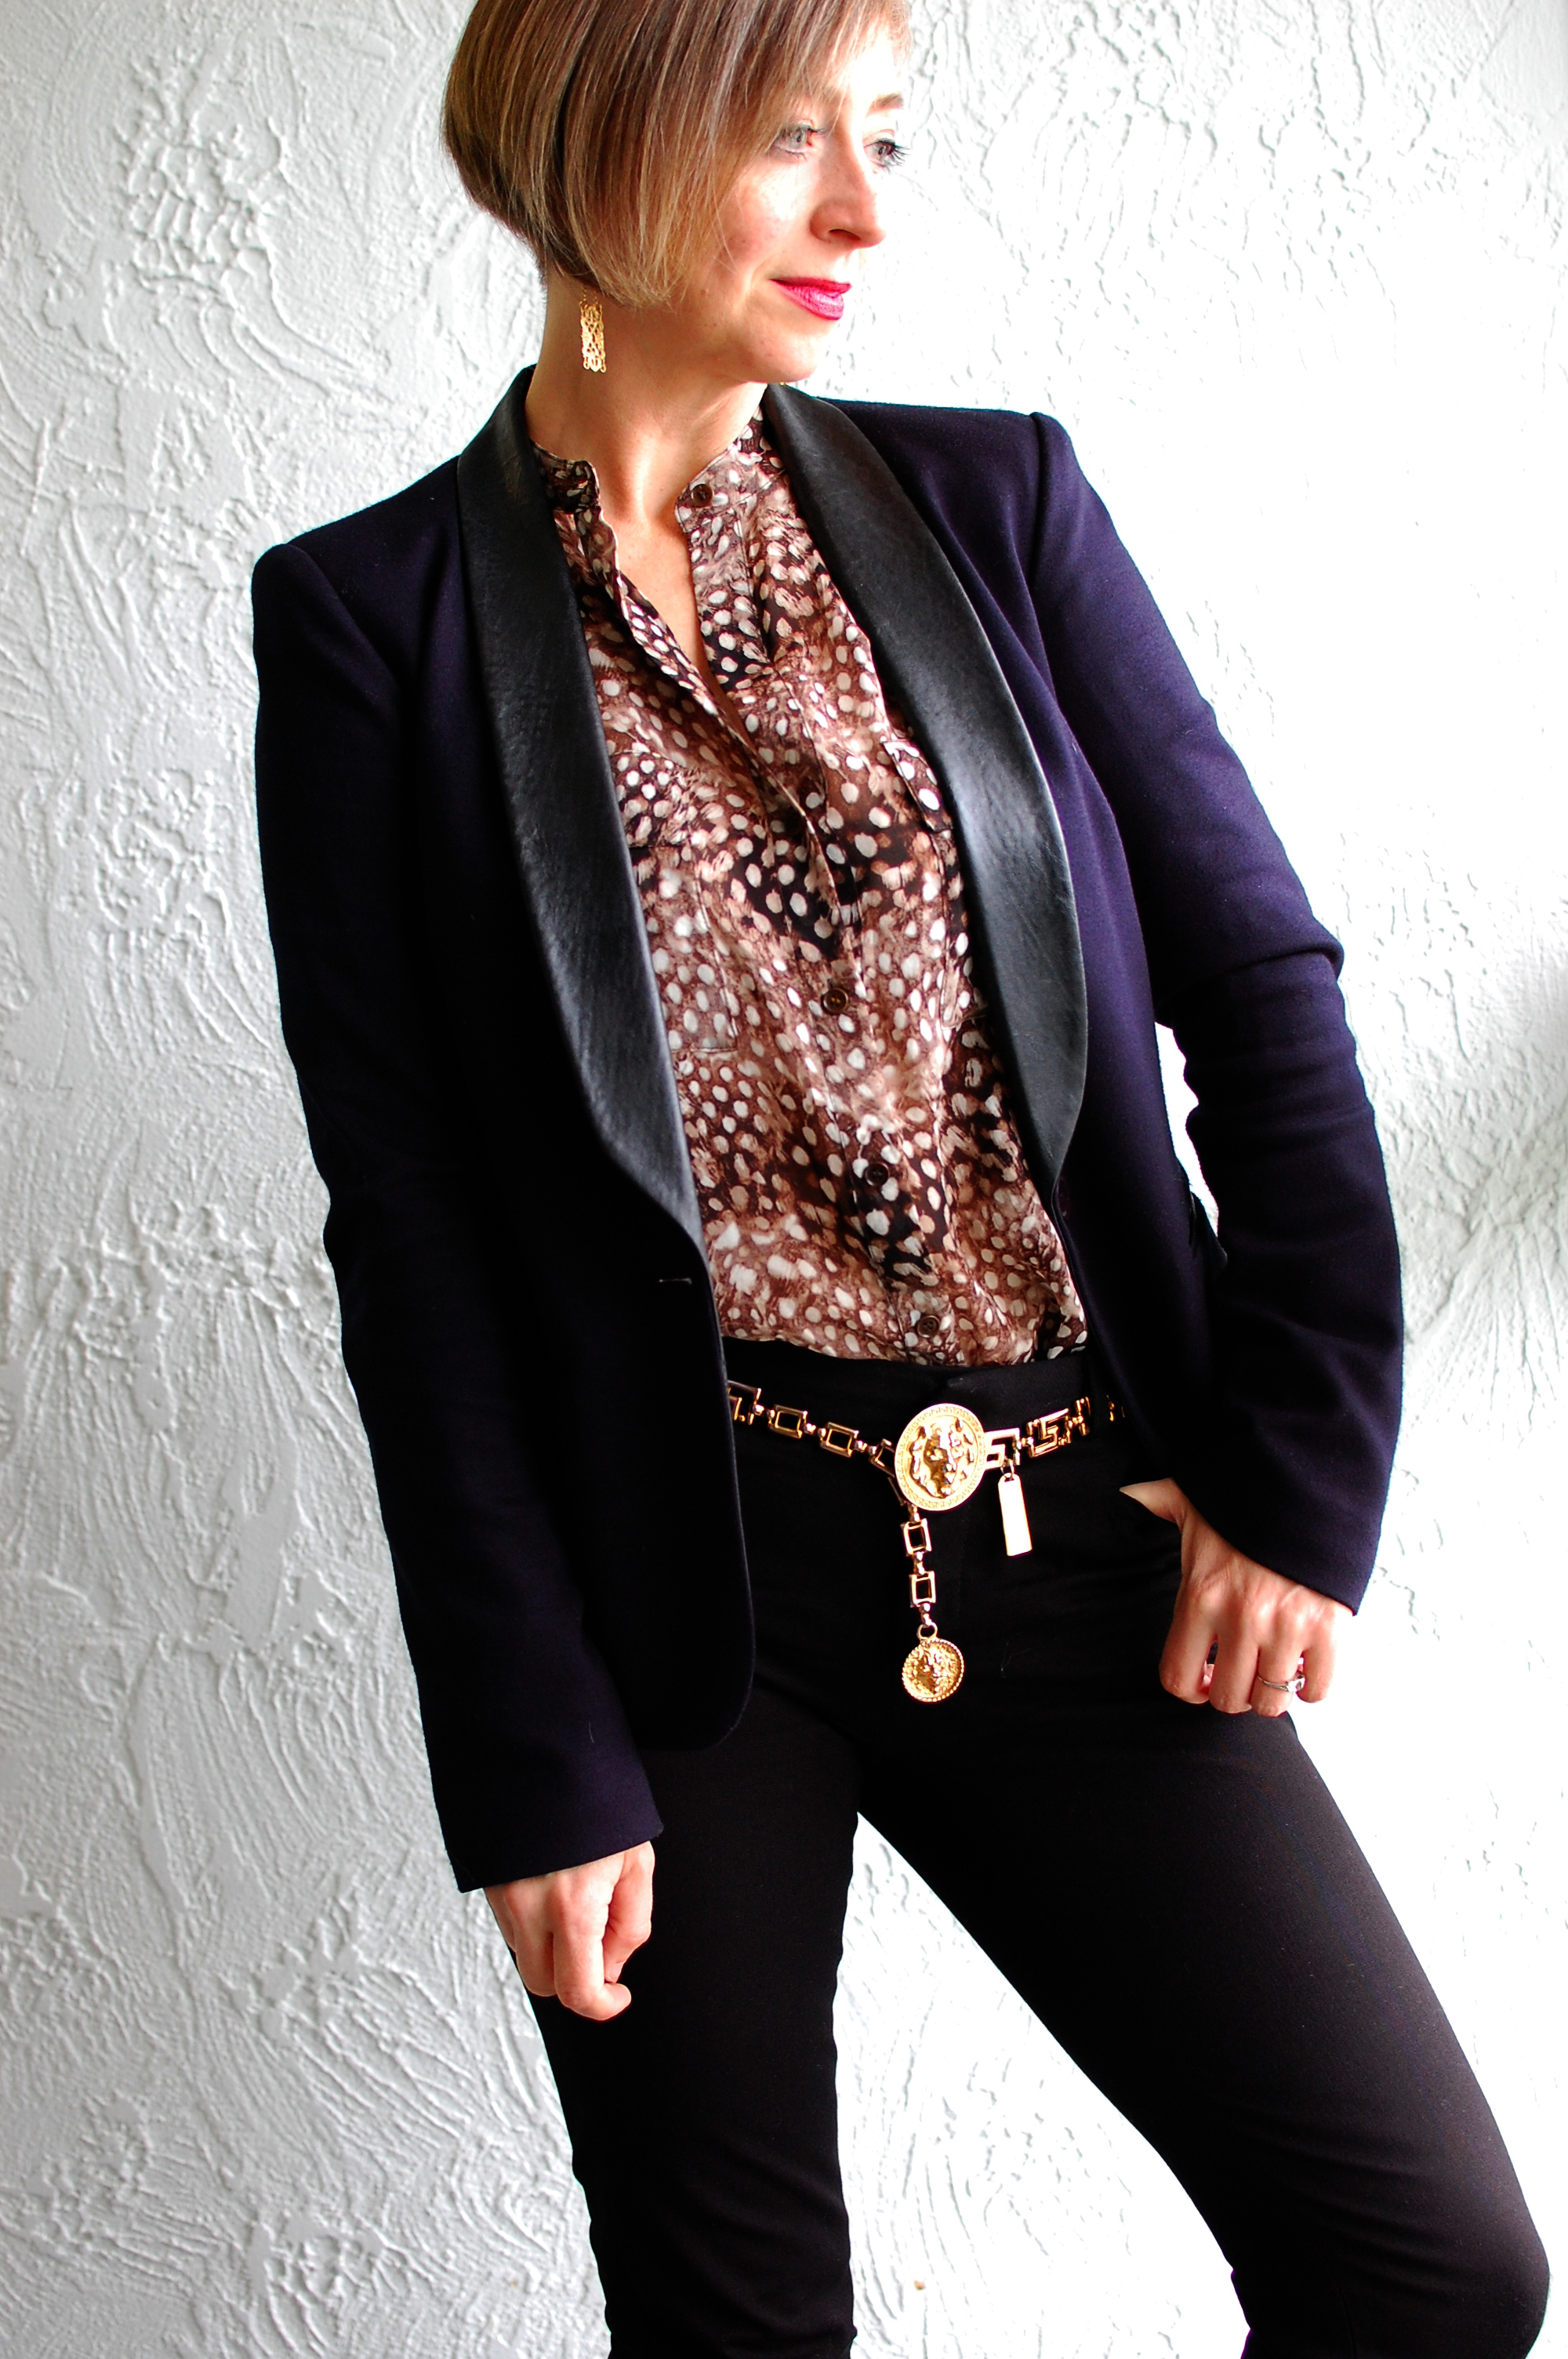 pantsuit black navy silk leopard blouse ootd whatiwore2day